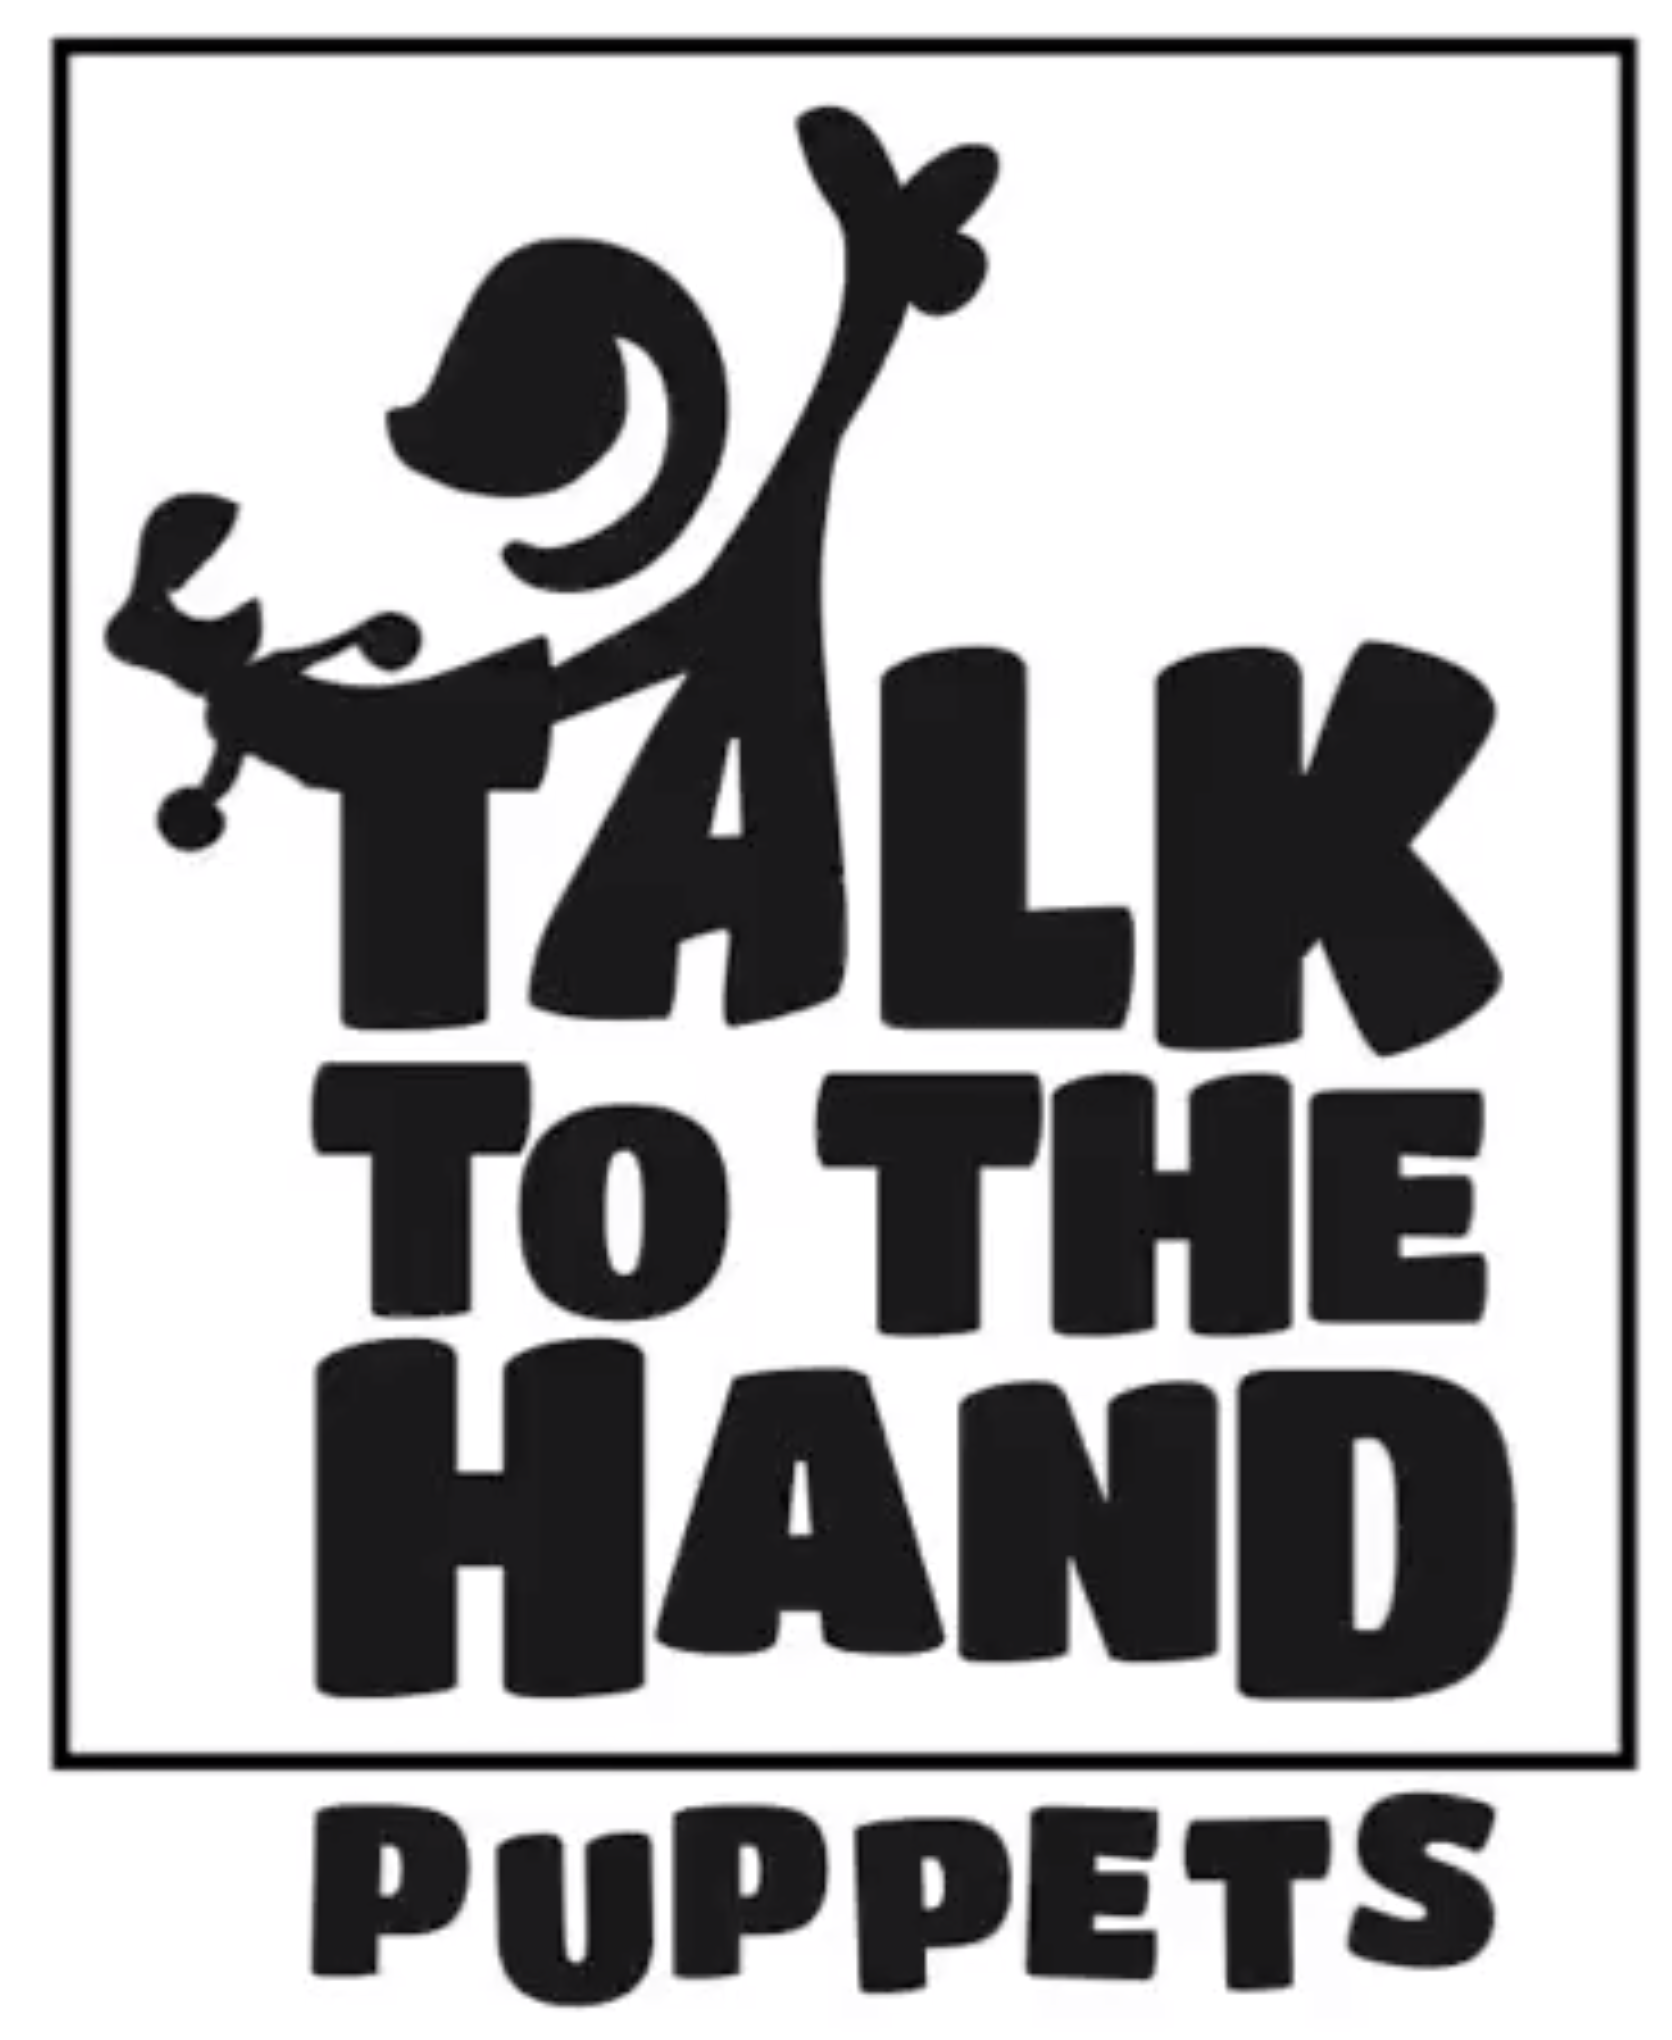 Talk to the Hand Puppetry logo